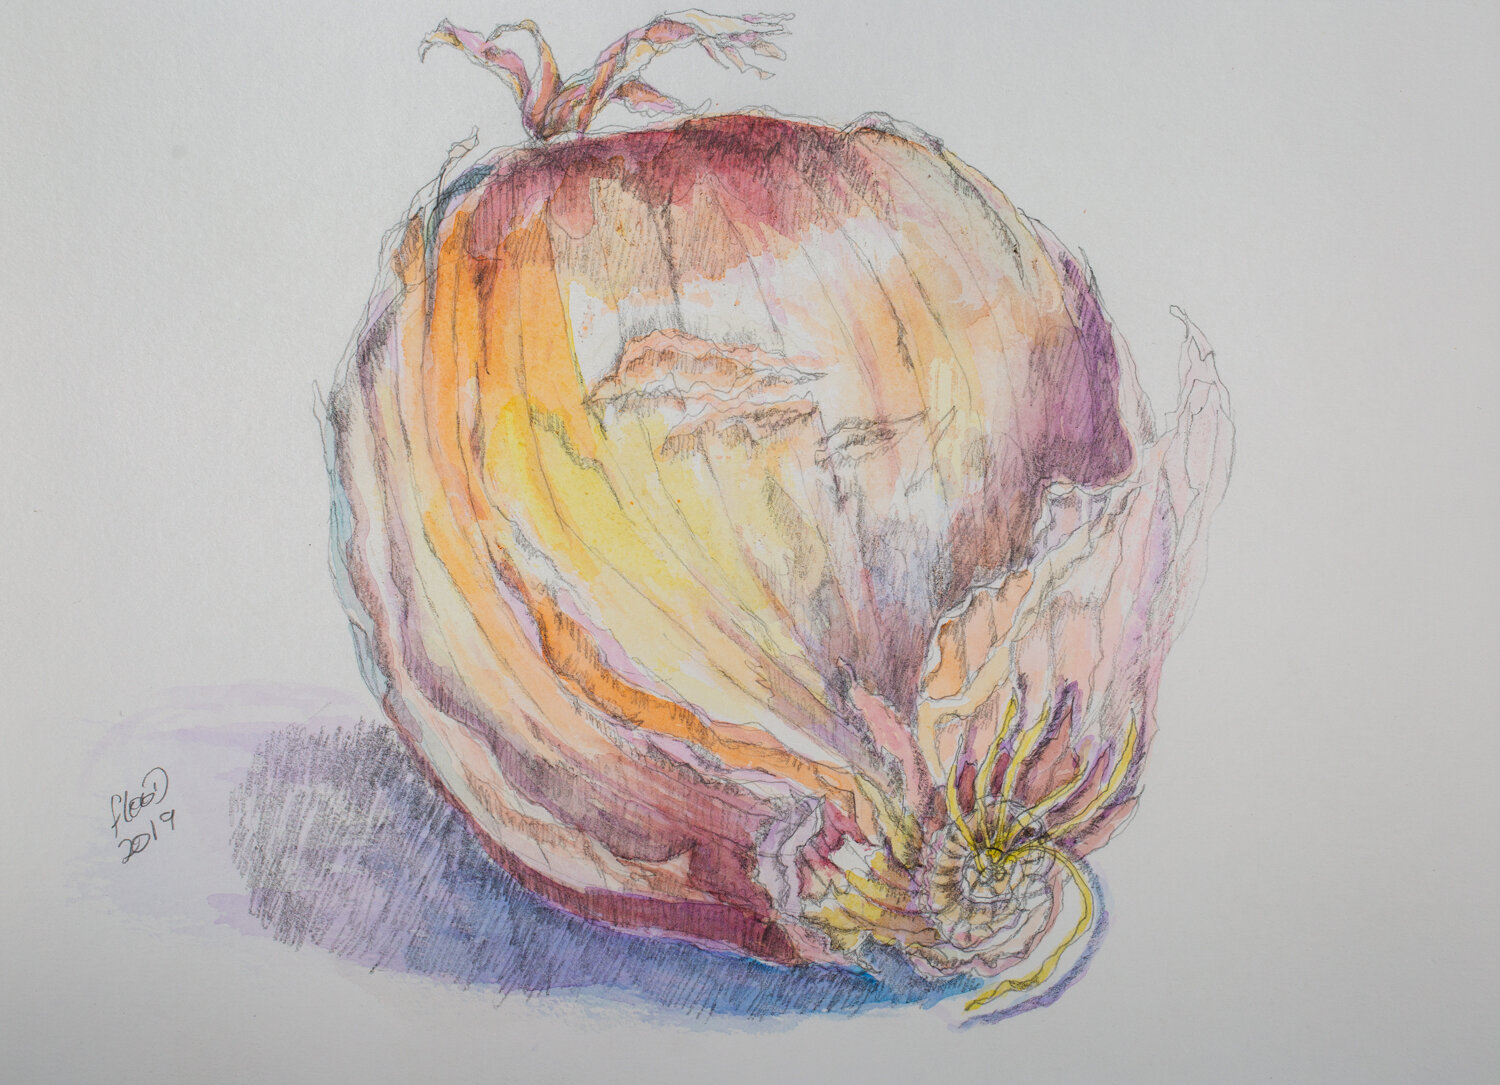 French Onion, by Claudia Flood